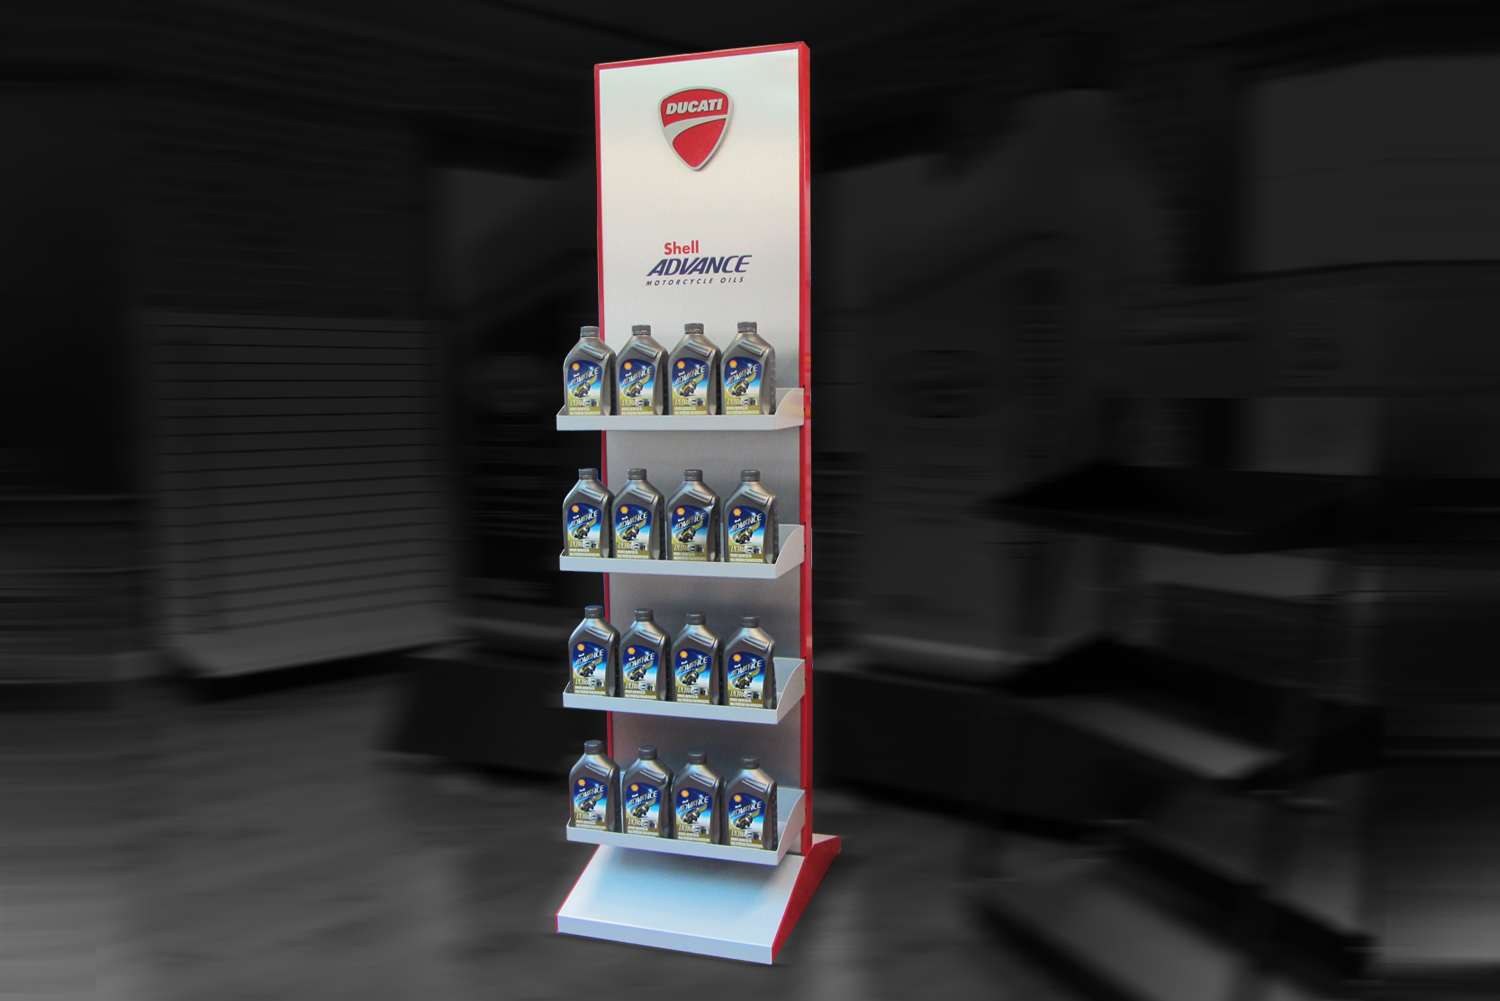 ducati point of purchase display by metaline